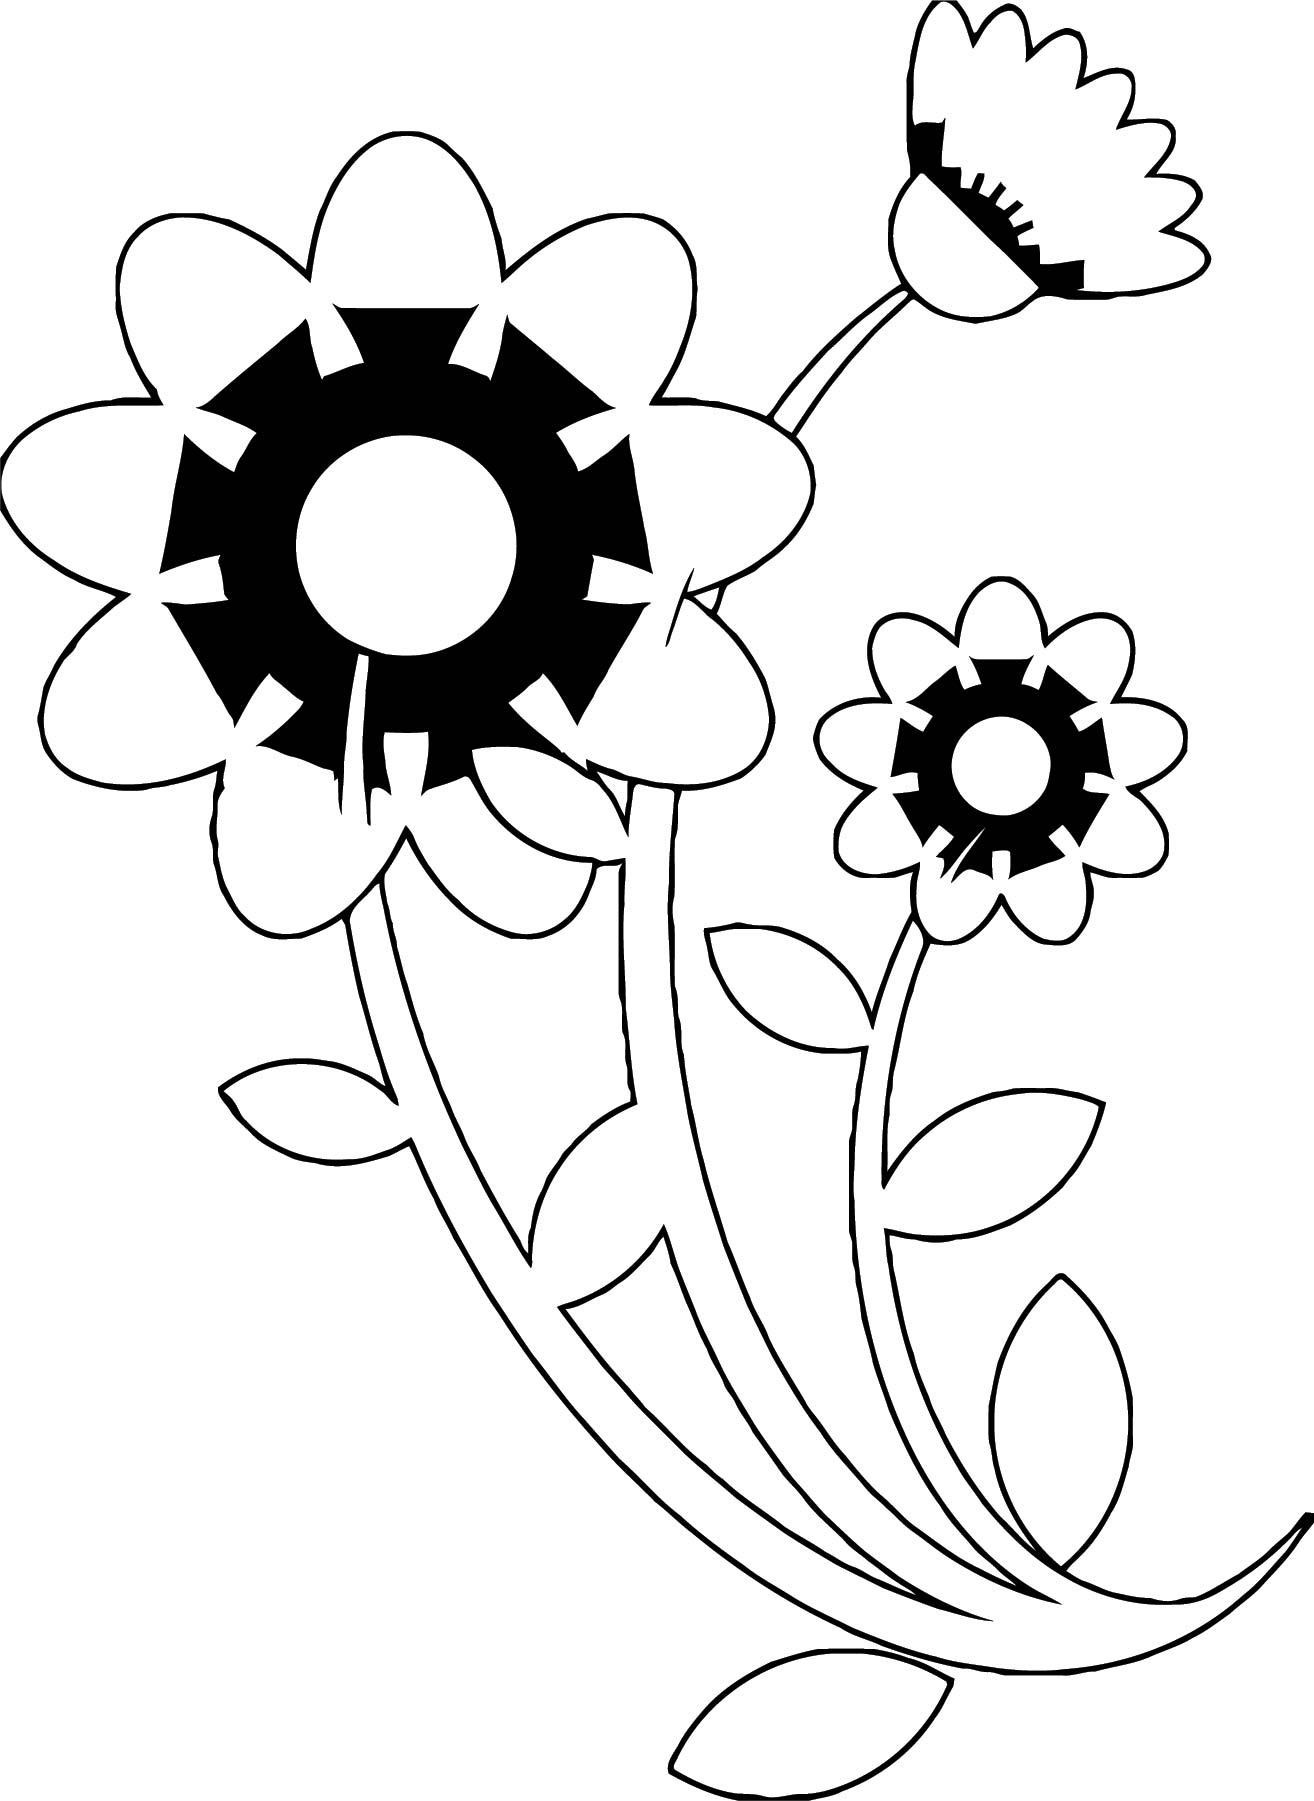 Flower Coloring Page Wecoloringpage 055